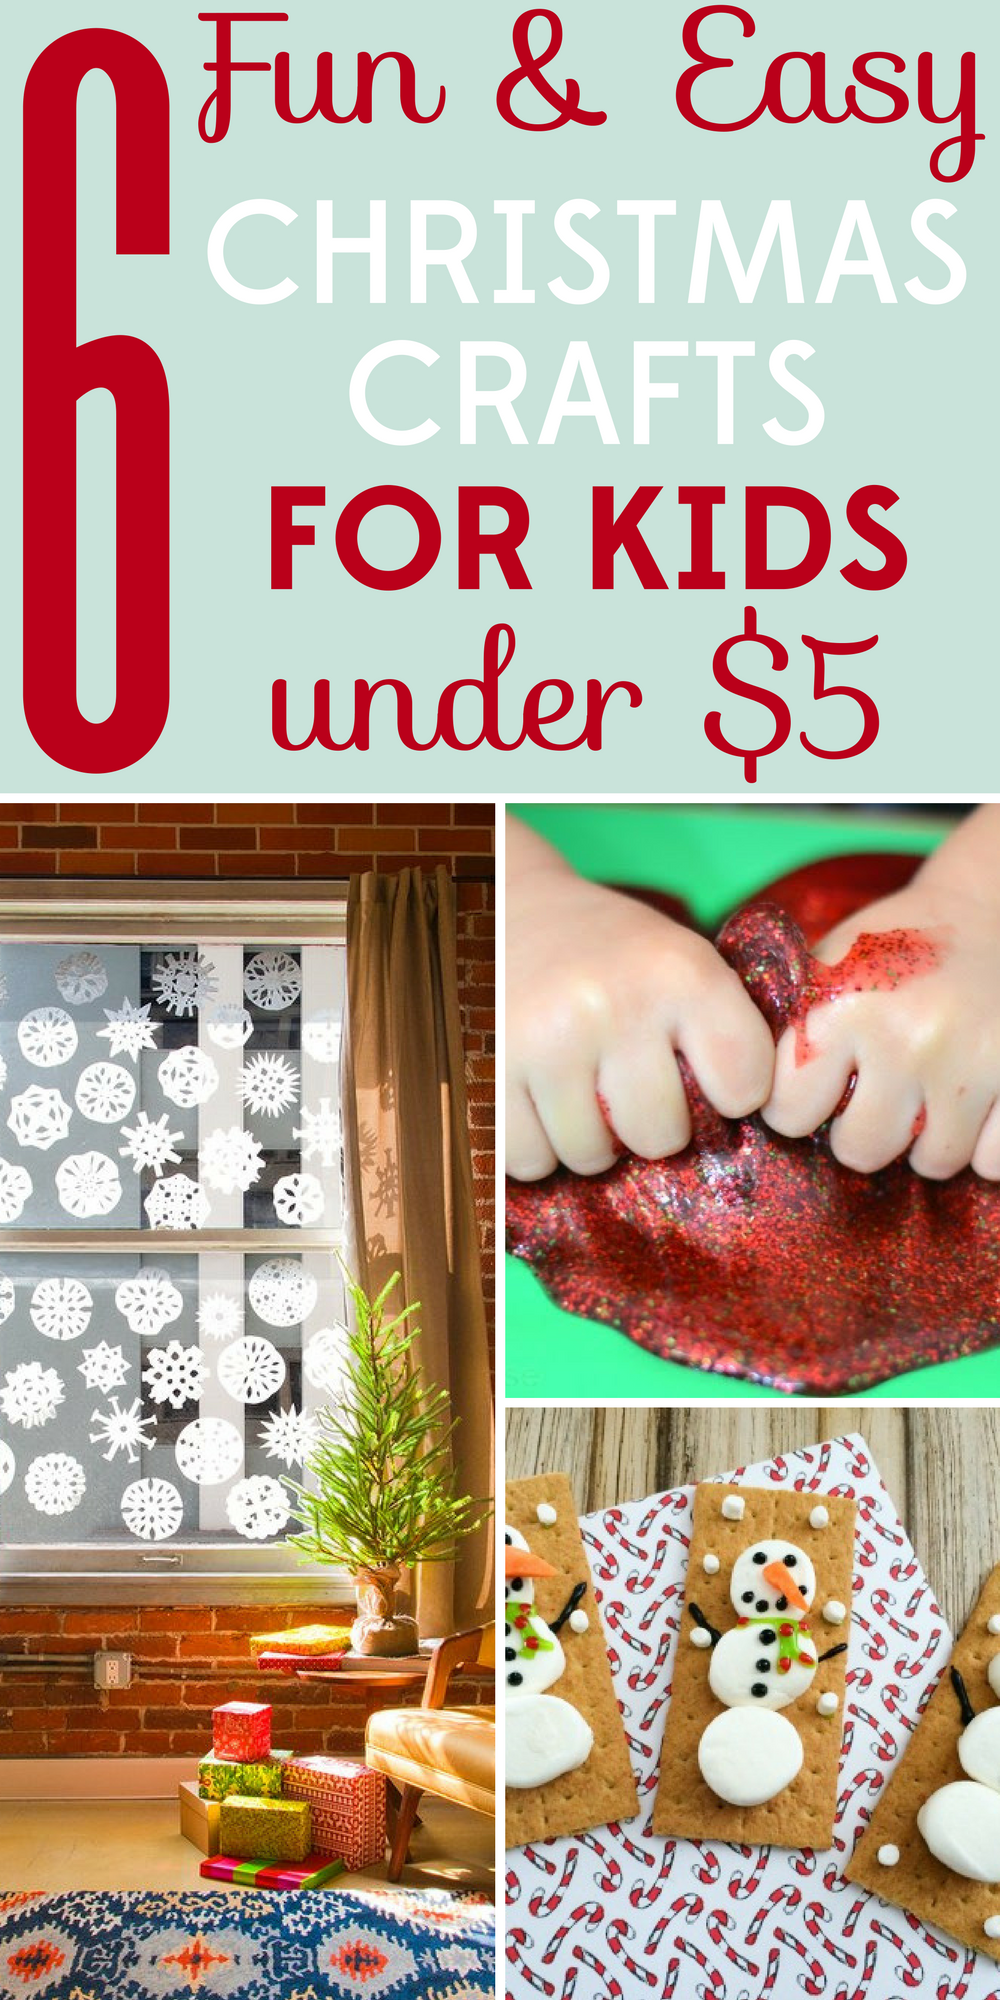 6 Fun And Easy Christmas Crafts For Kids Under $5